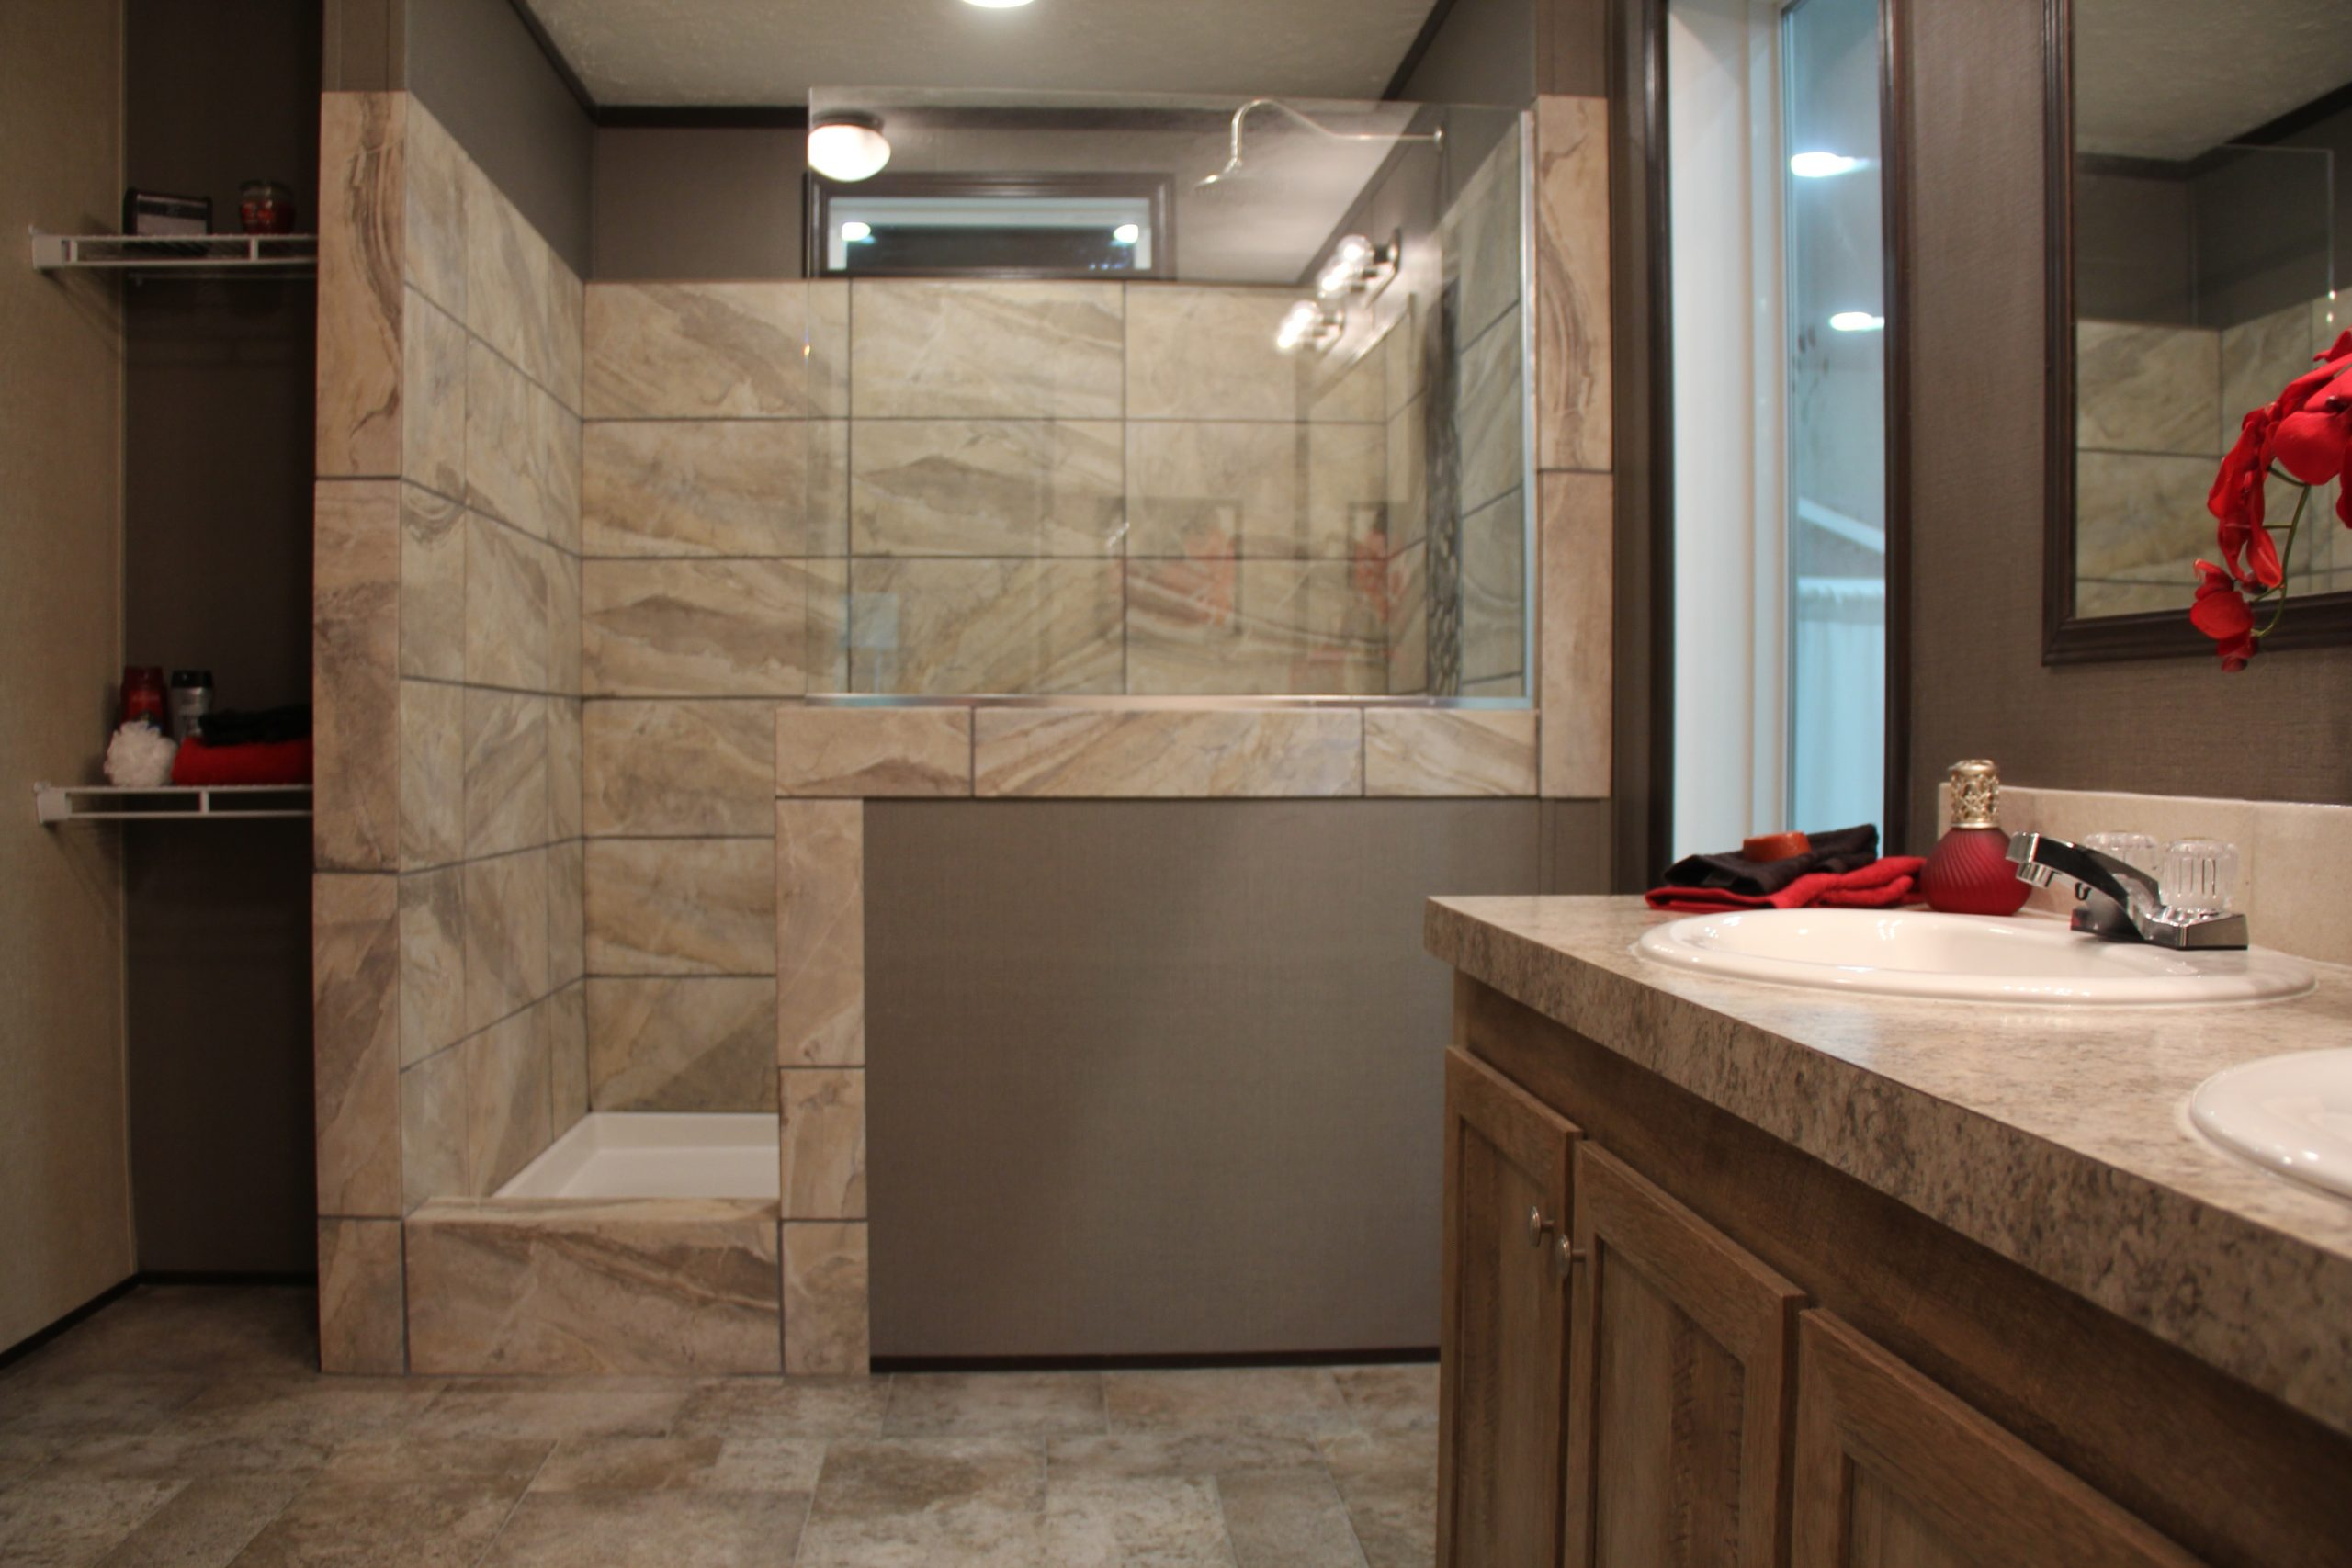 Some Of The Best Mobile Home Bathroom Ideas Us Mobile Home 40+ Mobile Home Bathroom Renovation Ideas